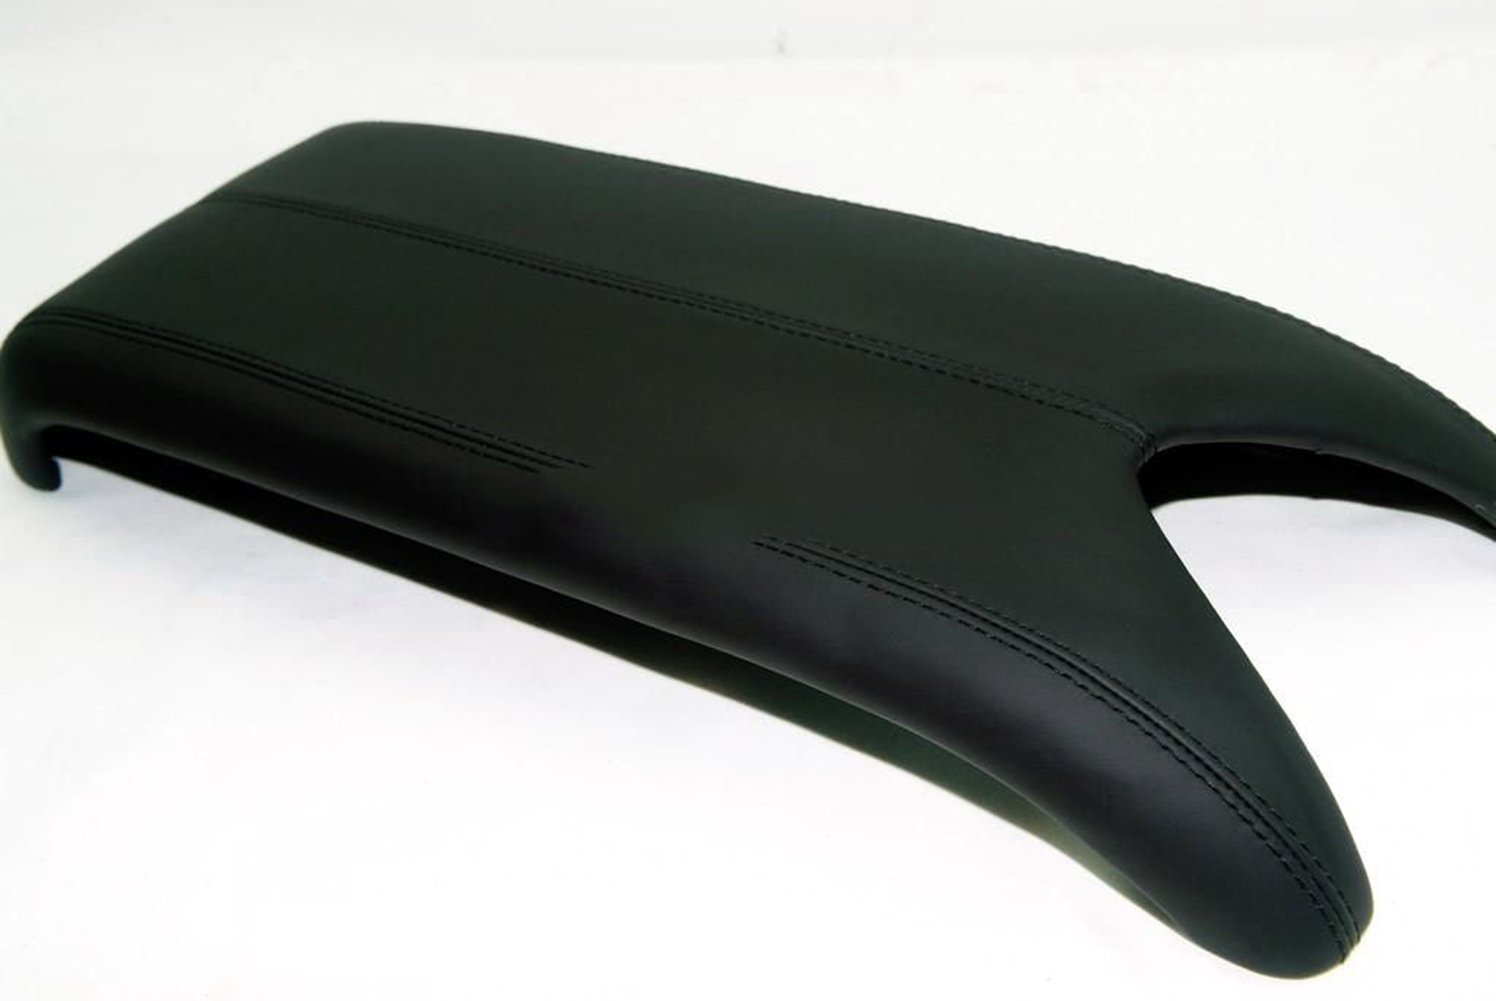 Black Leather Suture Console Lid Armrest Cover for Acura Armrest Cover(Only The Leather Part not include Lid) Ezzy Auto